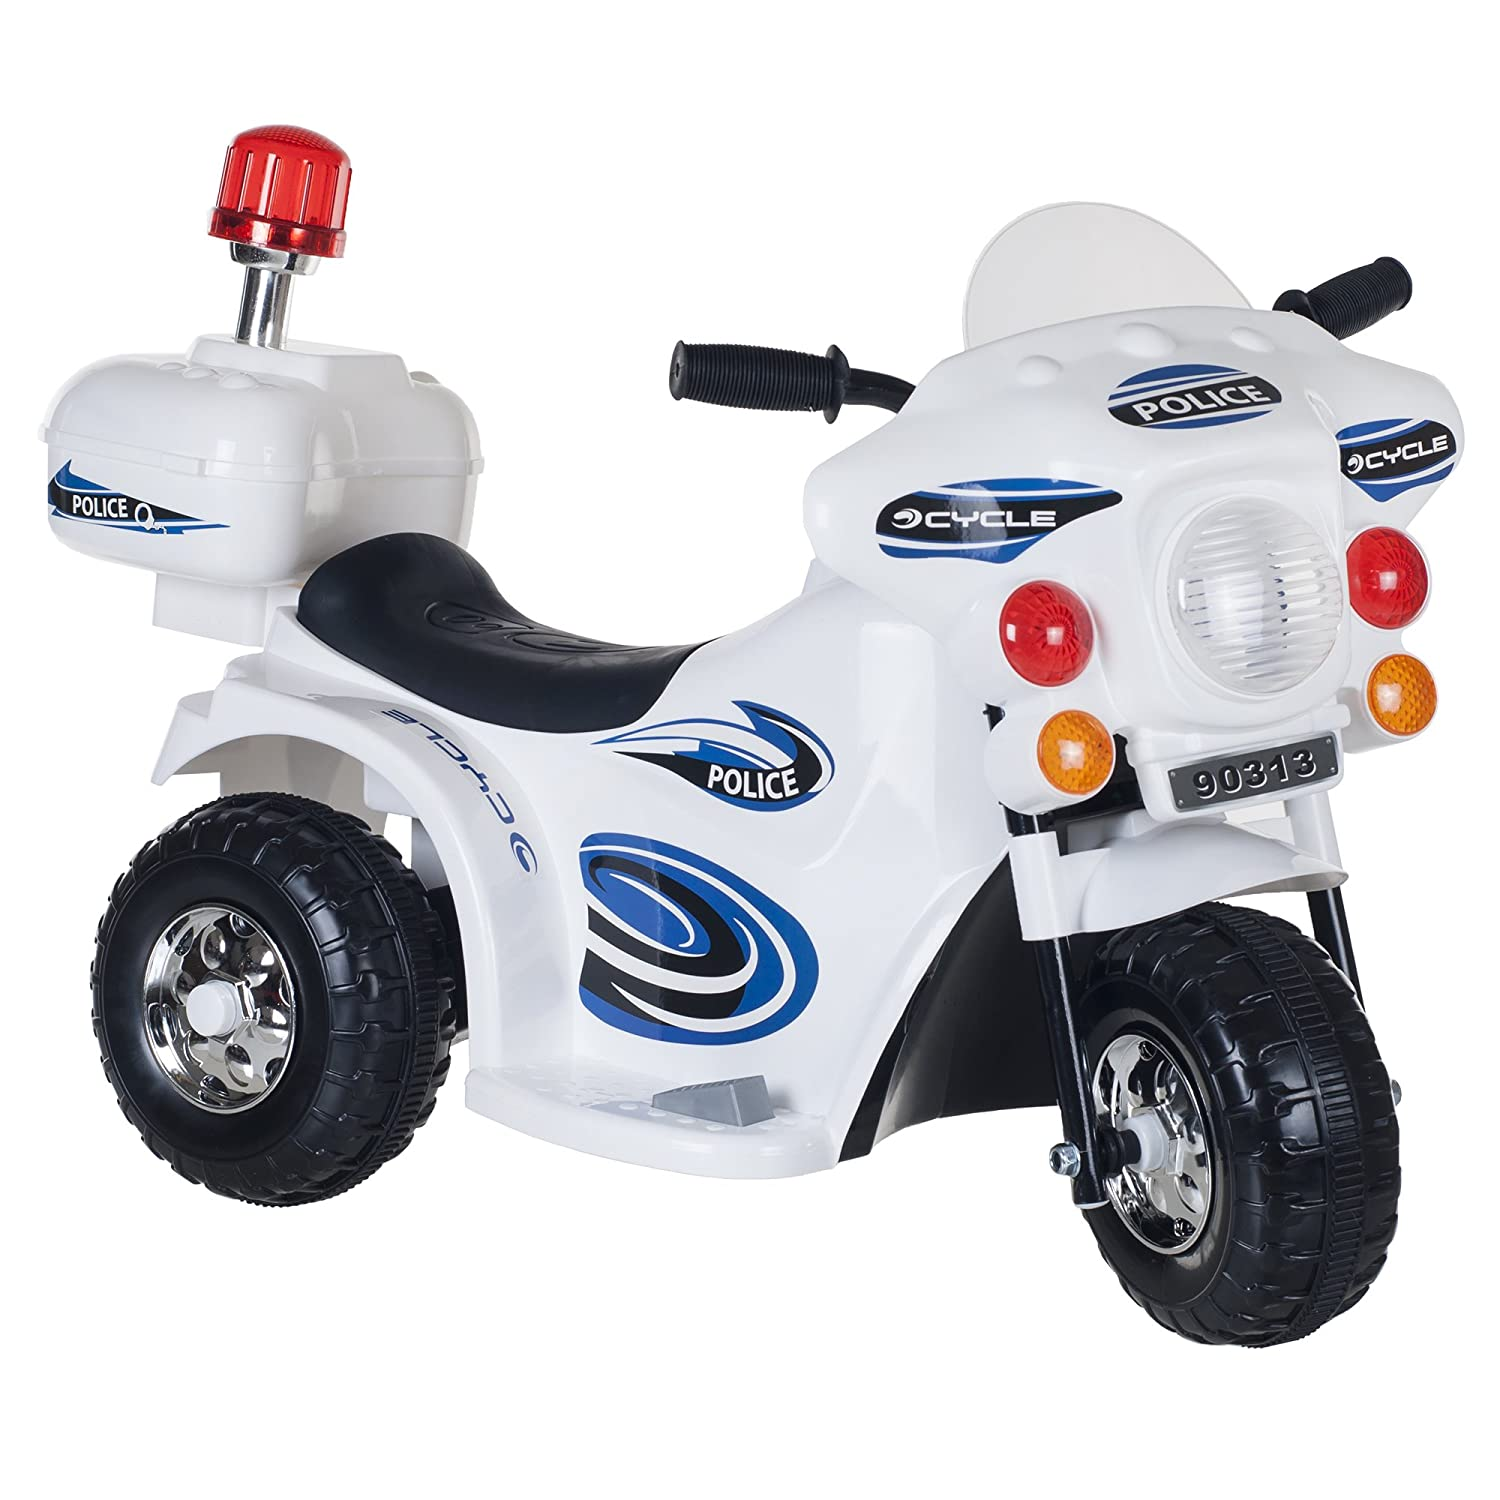 Amazon.com: Lil\' Rider Ride on Toy, 3 Wheel Motorcycle for Kids ...